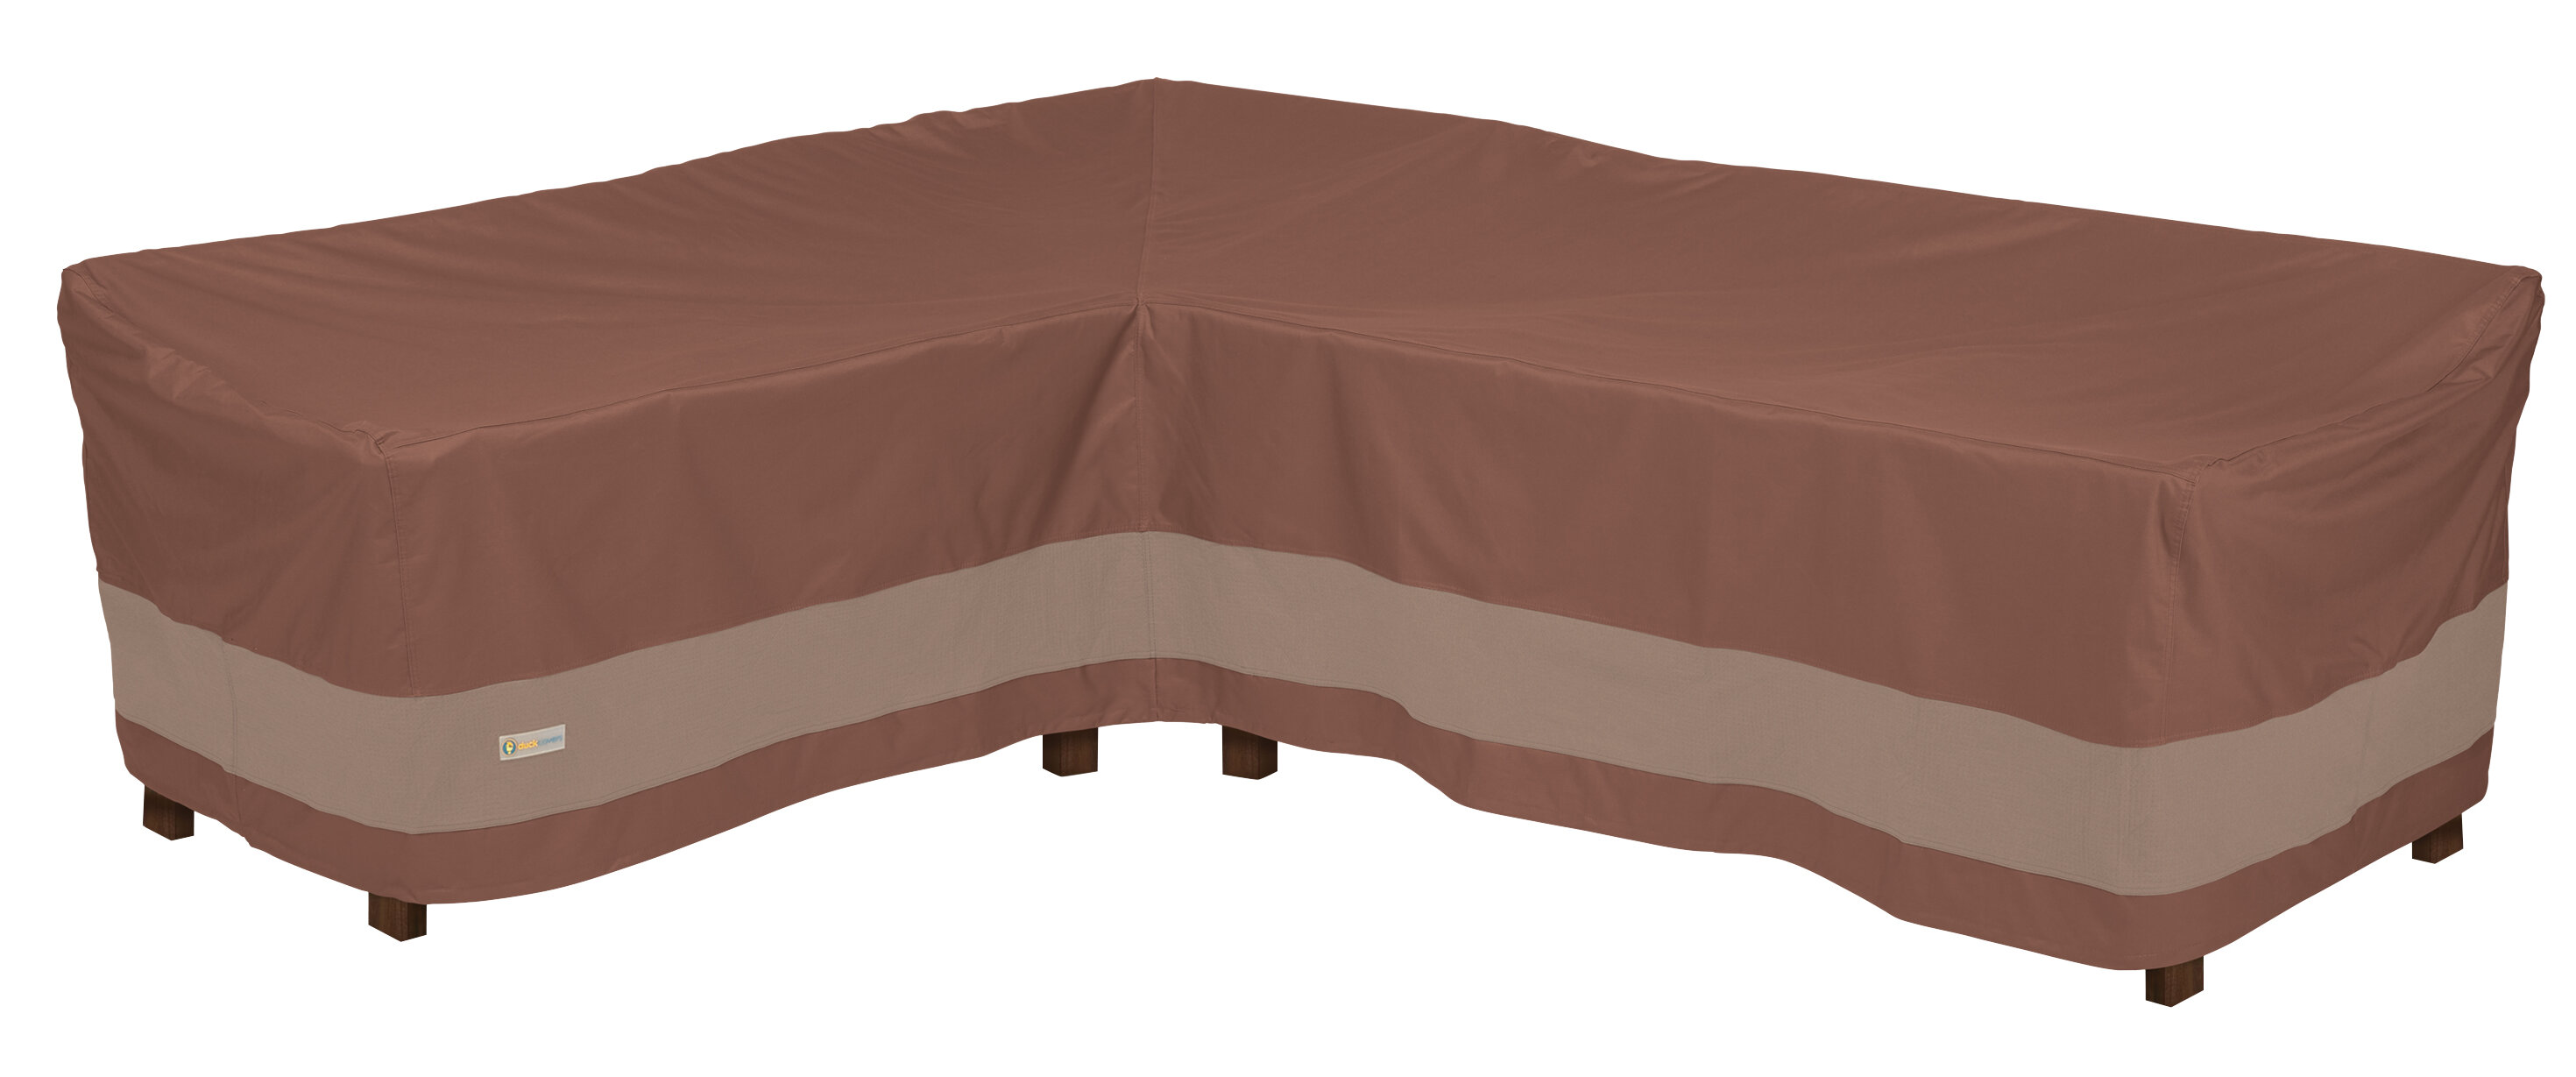 Freeport Park Breunig Water Resistant Patio Dining Set Cover With 2 Year Warranty Reviews Wayfair